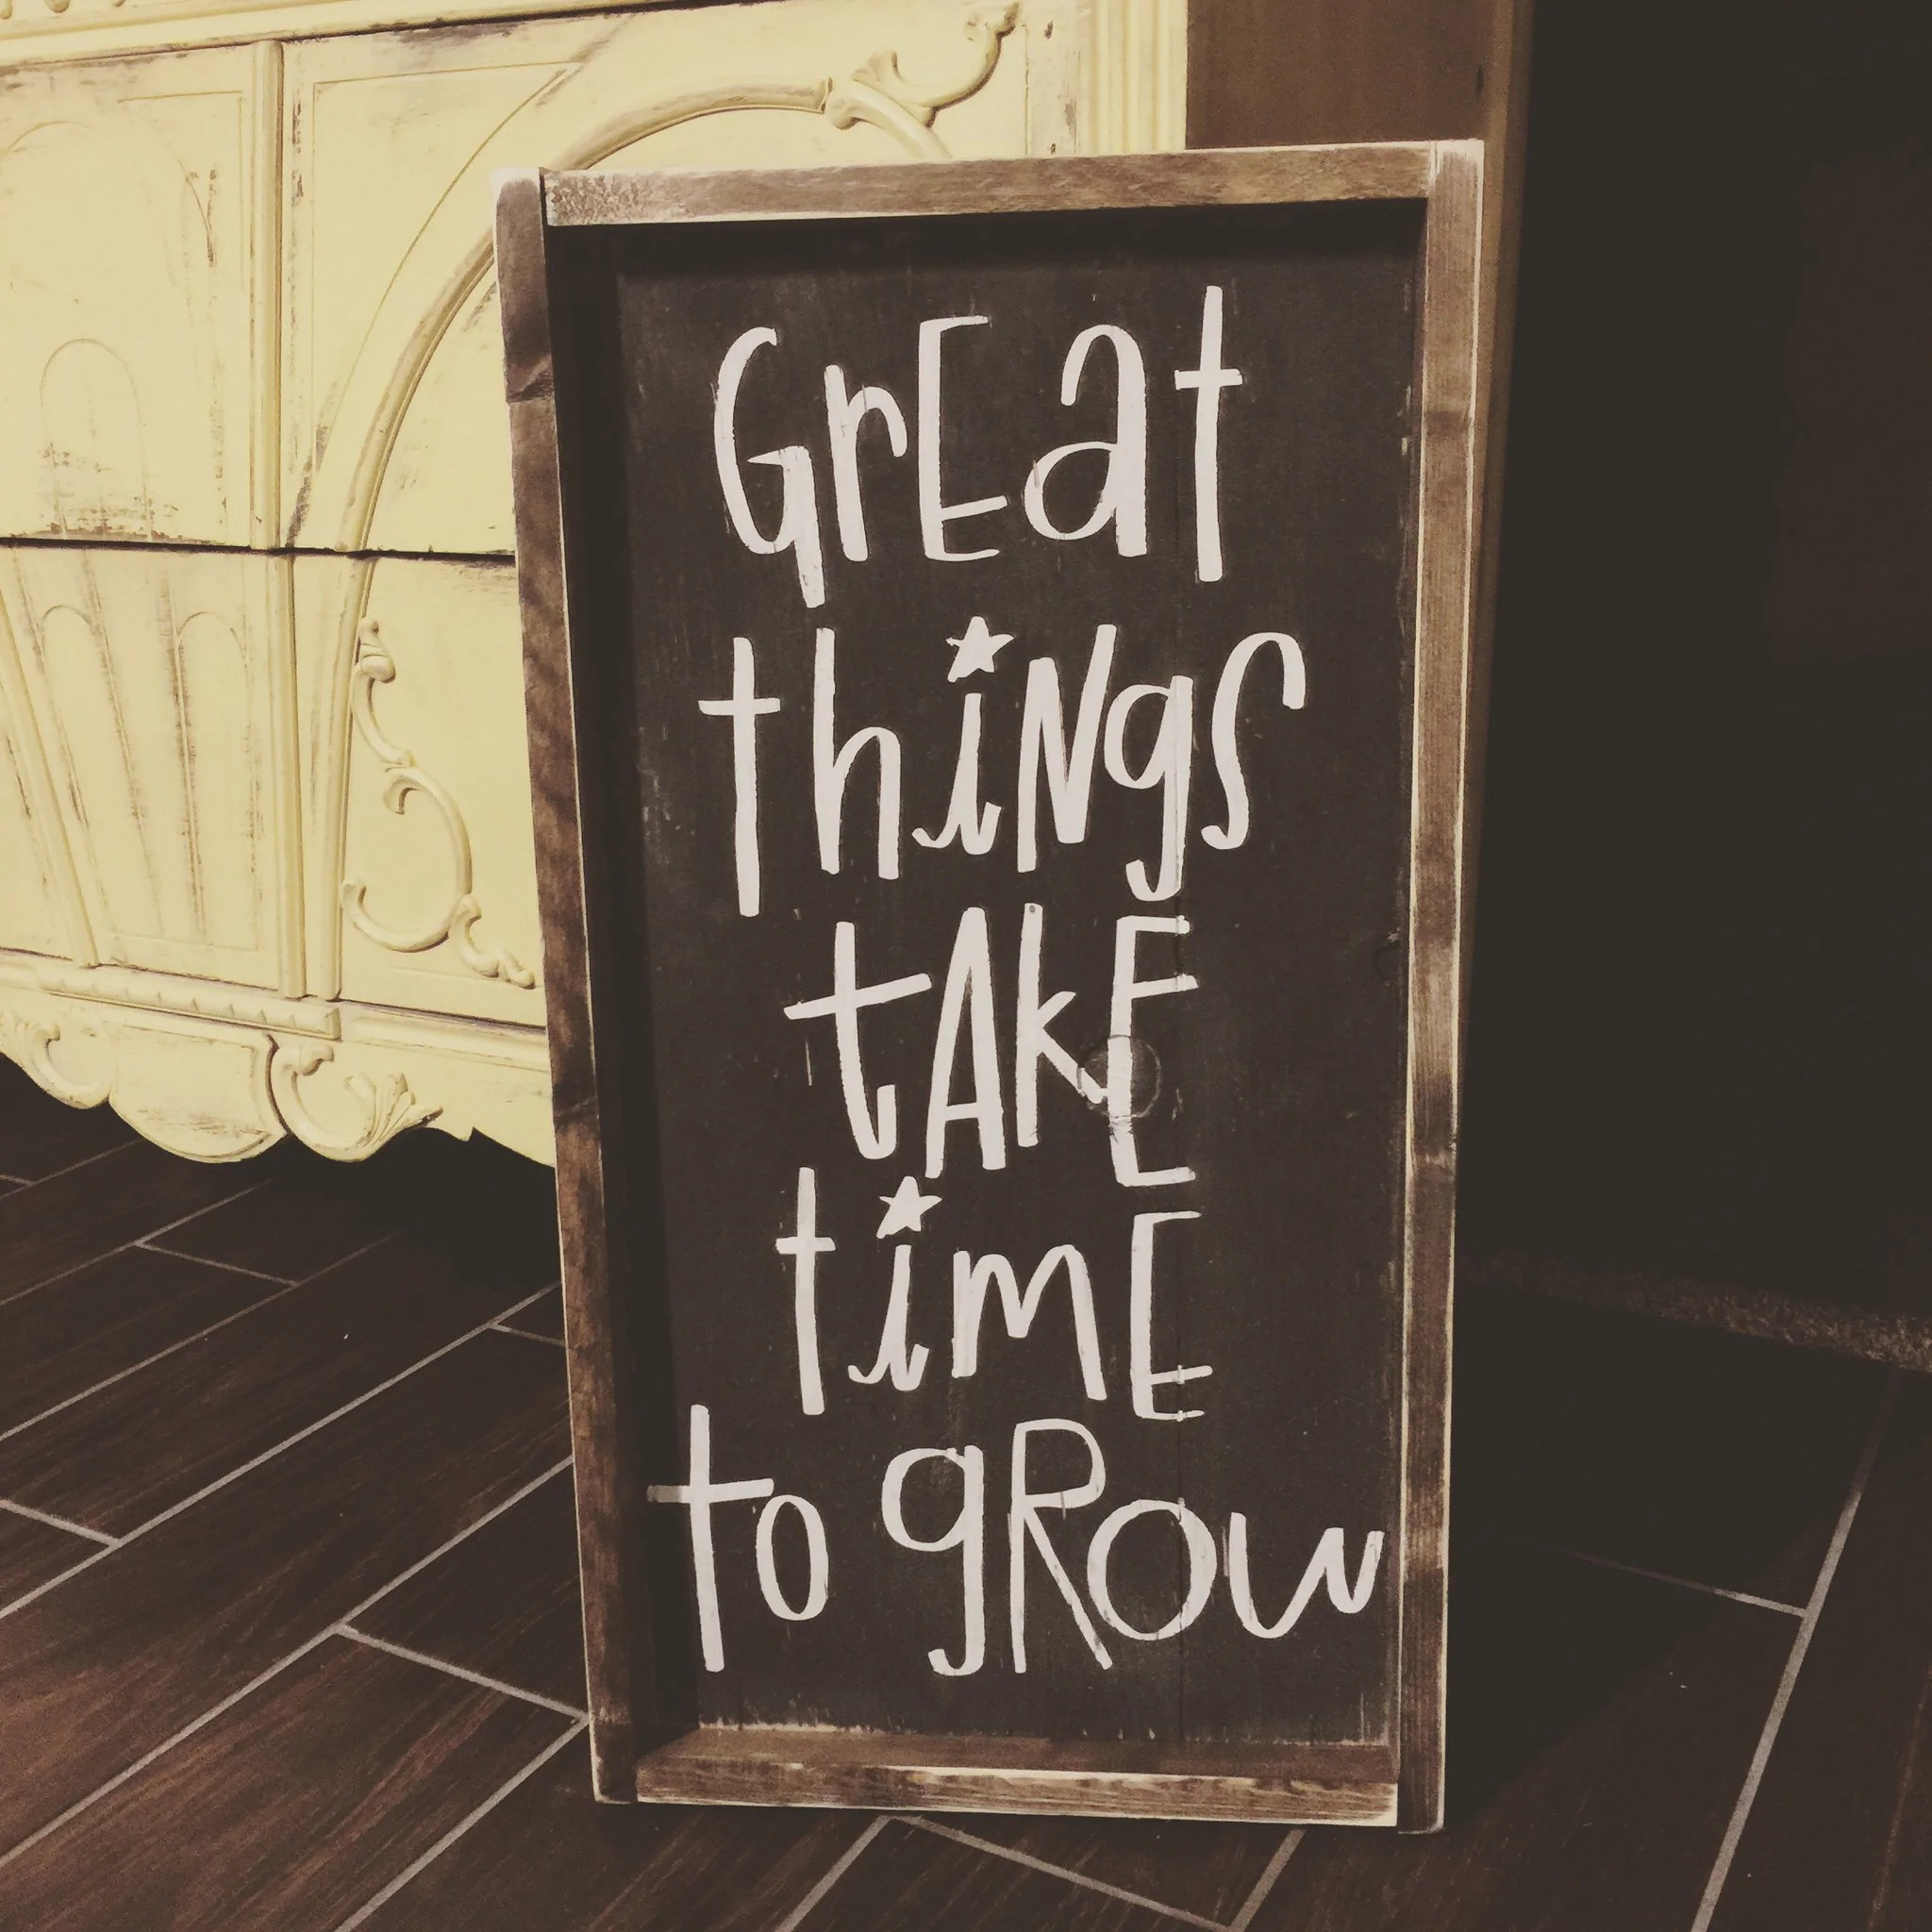 Great Things Take Time To Grow  JaxnBlvd